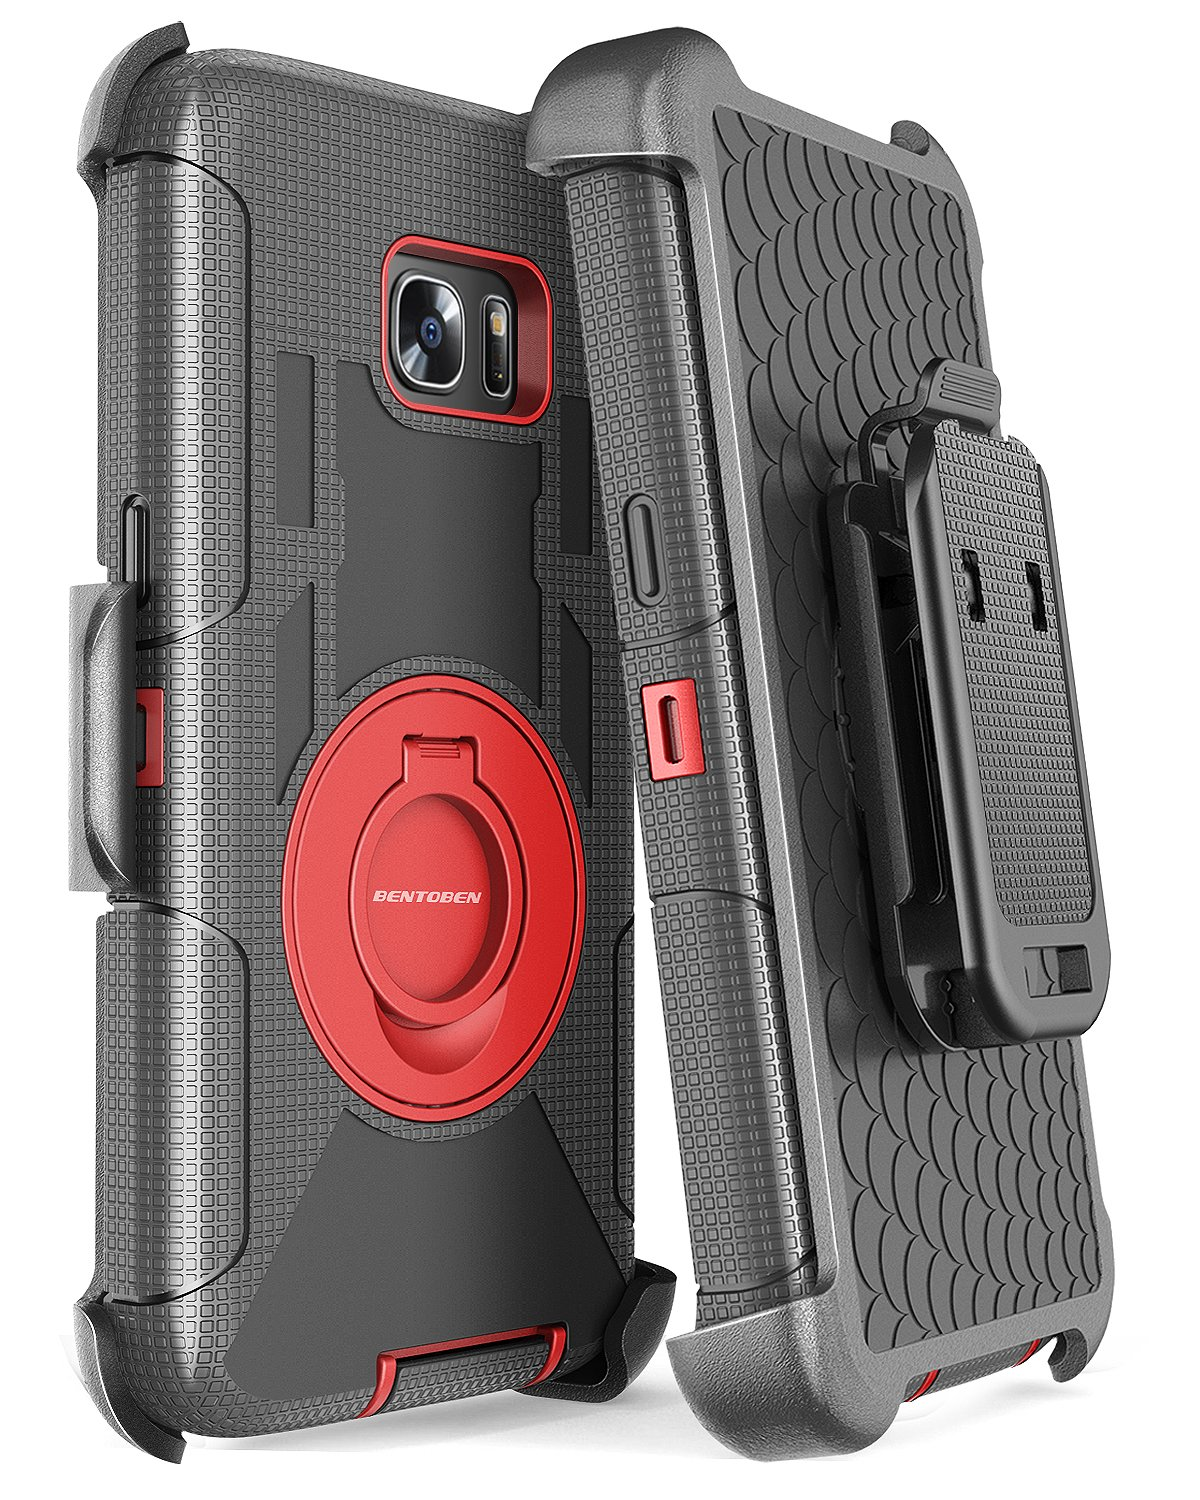 Galaxy S7 Edge Case, Samsung Galaxy S7 Edge Case, BENTOBEN Heavy Duty Shockproof Full Body Rugged Hybrid Protective Case for Samsung Galaxy S7 Edge with Kickstand Belt Clip Holster Cover, Black/Red